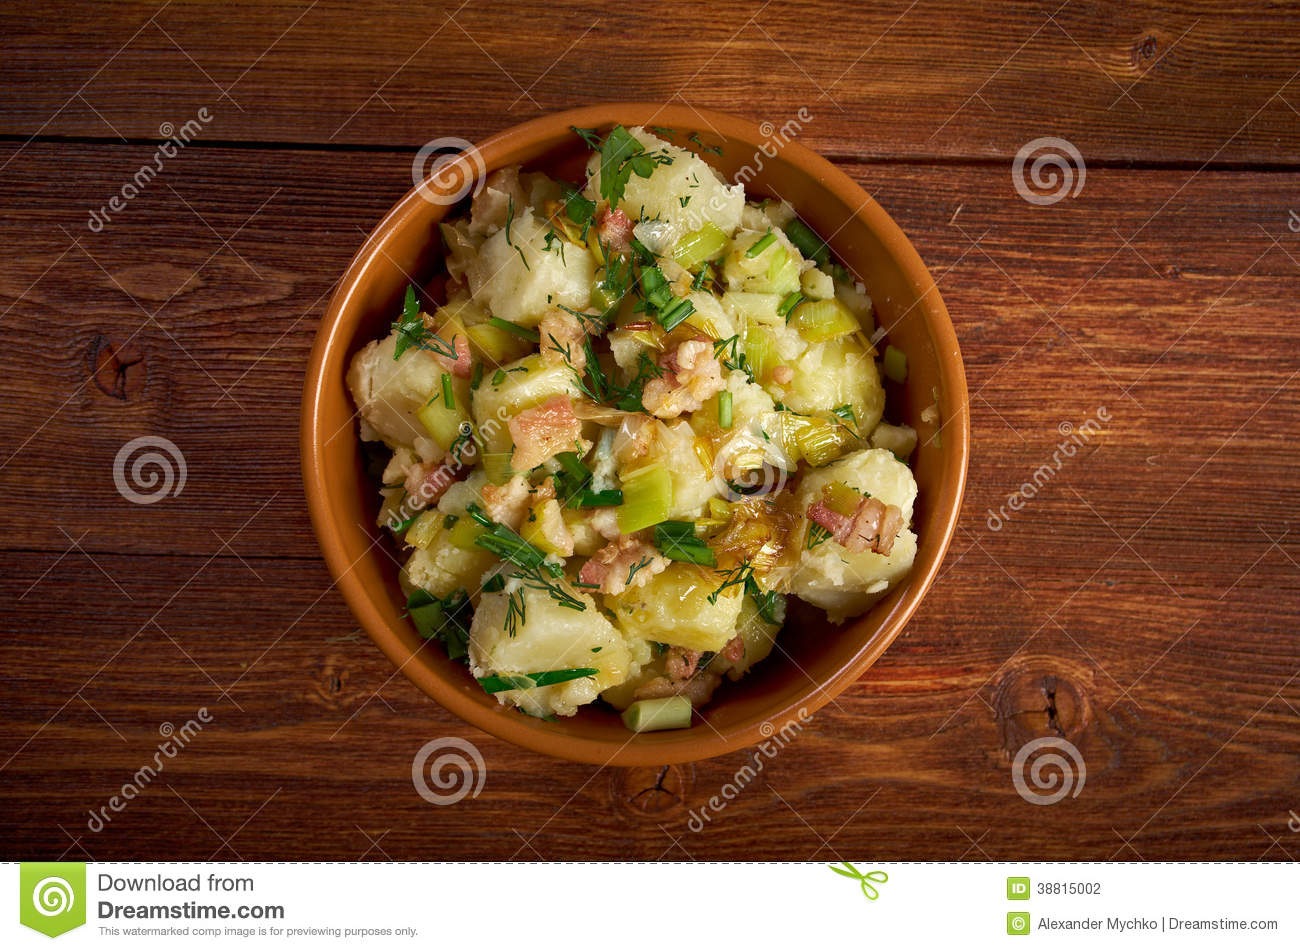 ... salad swabian potato salad aka german potato salad german potato salad